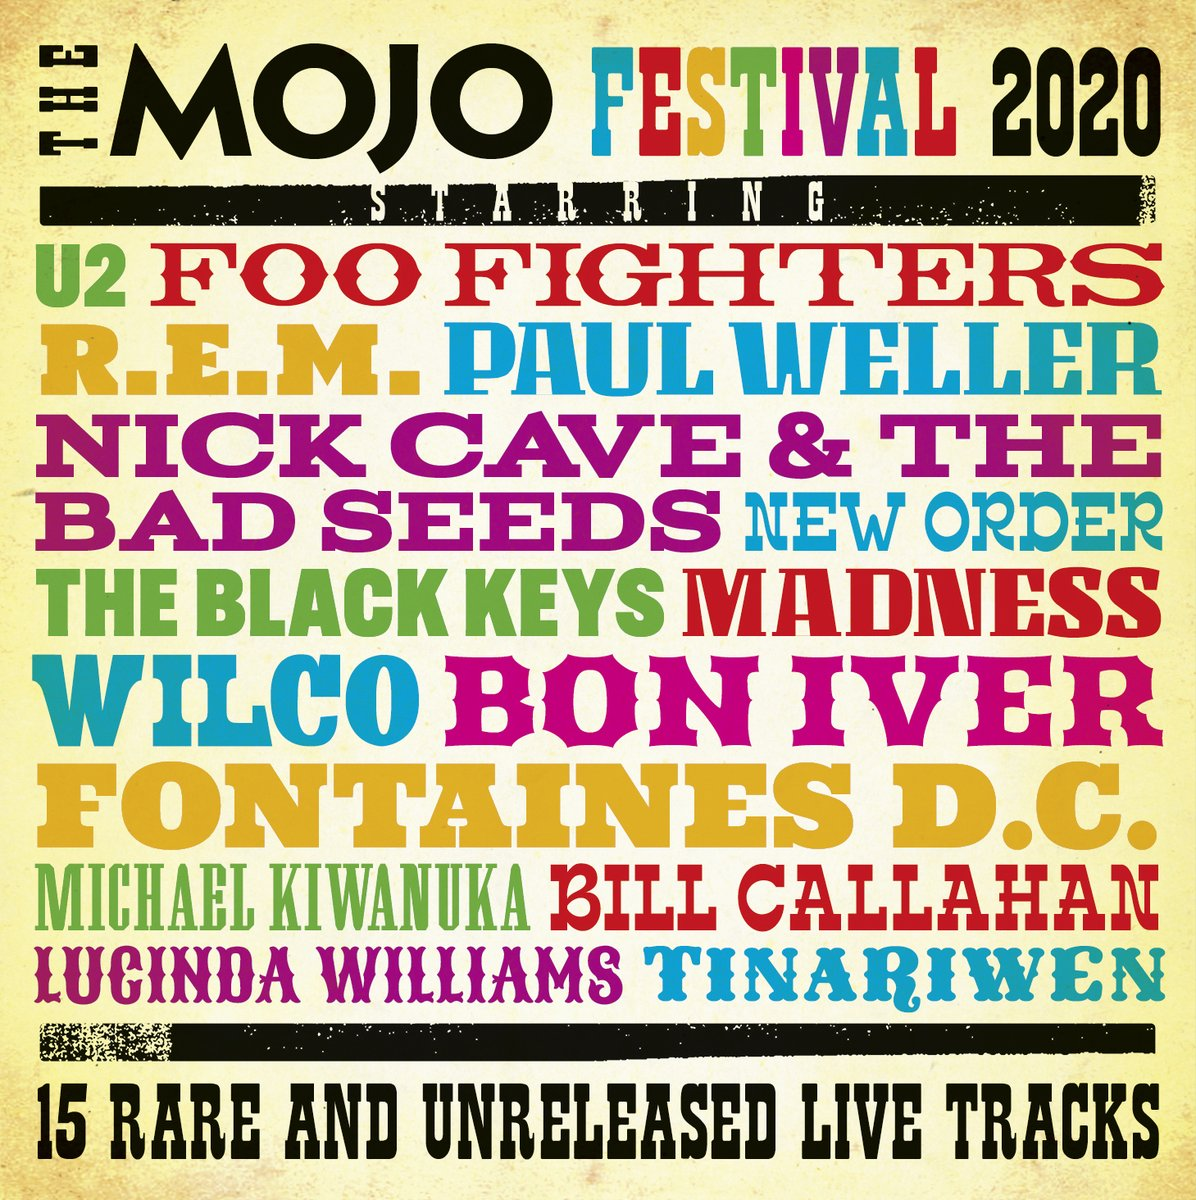 This month's new MOJO comes with an extraordinary CD of live, rare and unreleased tracks by @foofighters @U2 @remhq @paulwellerHQ @nickcave @neworder @theblackkeys @MadnessNews @Wilco @boniver @fontainesdublin @michaelkiwanuka. Order a copy direct from us https://t.co/y4OERgRzCt https://t.co/Uz5MigHPGn